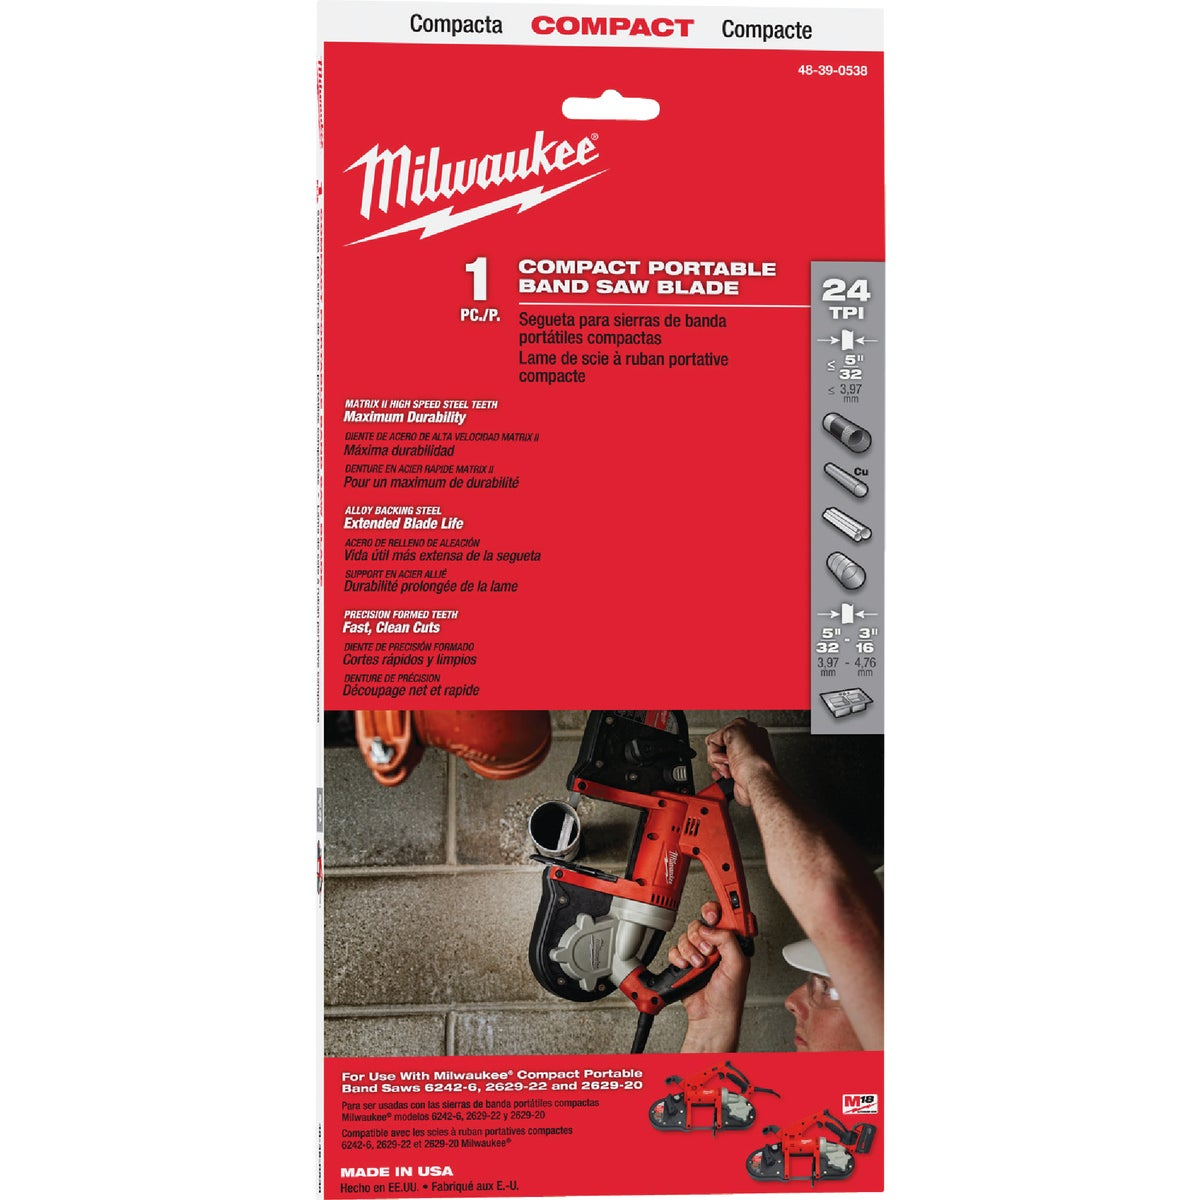 "24T 35-3/8"" SAW BLADE - 48-39-0538 by Milwaukee Accessory"